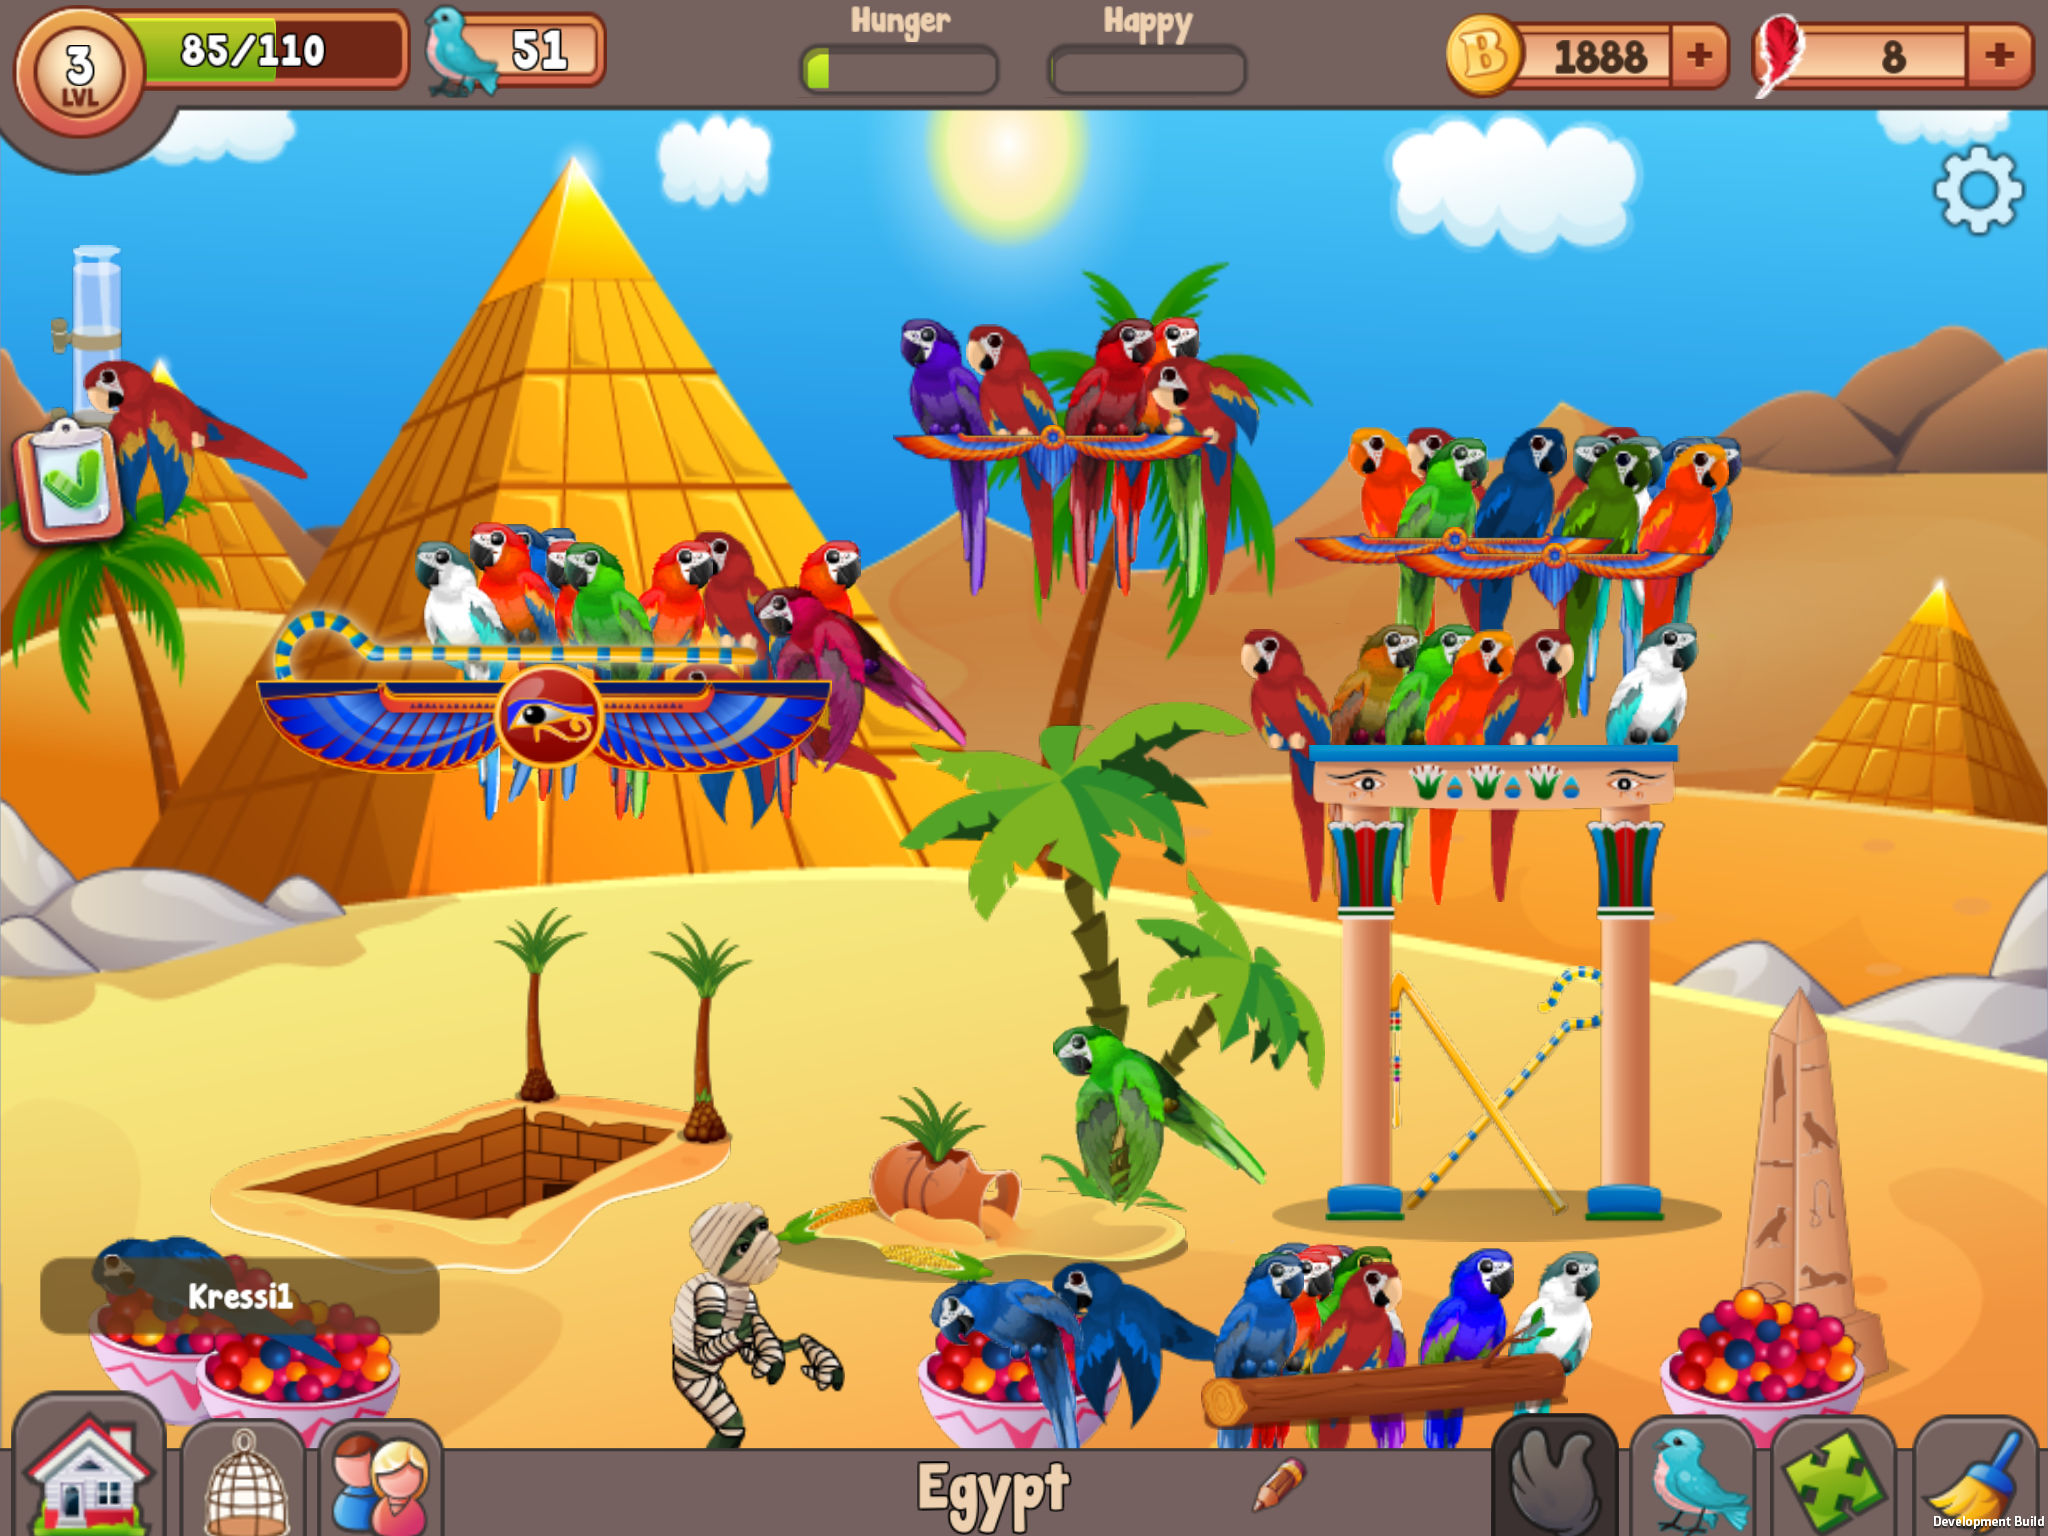 Fish for aquarium games - If You Like Fish And Aquarium Games You Have To Try Birdland In Birdland Everything Is About Birds Please Write Us E Mail Or Comment If You Have A